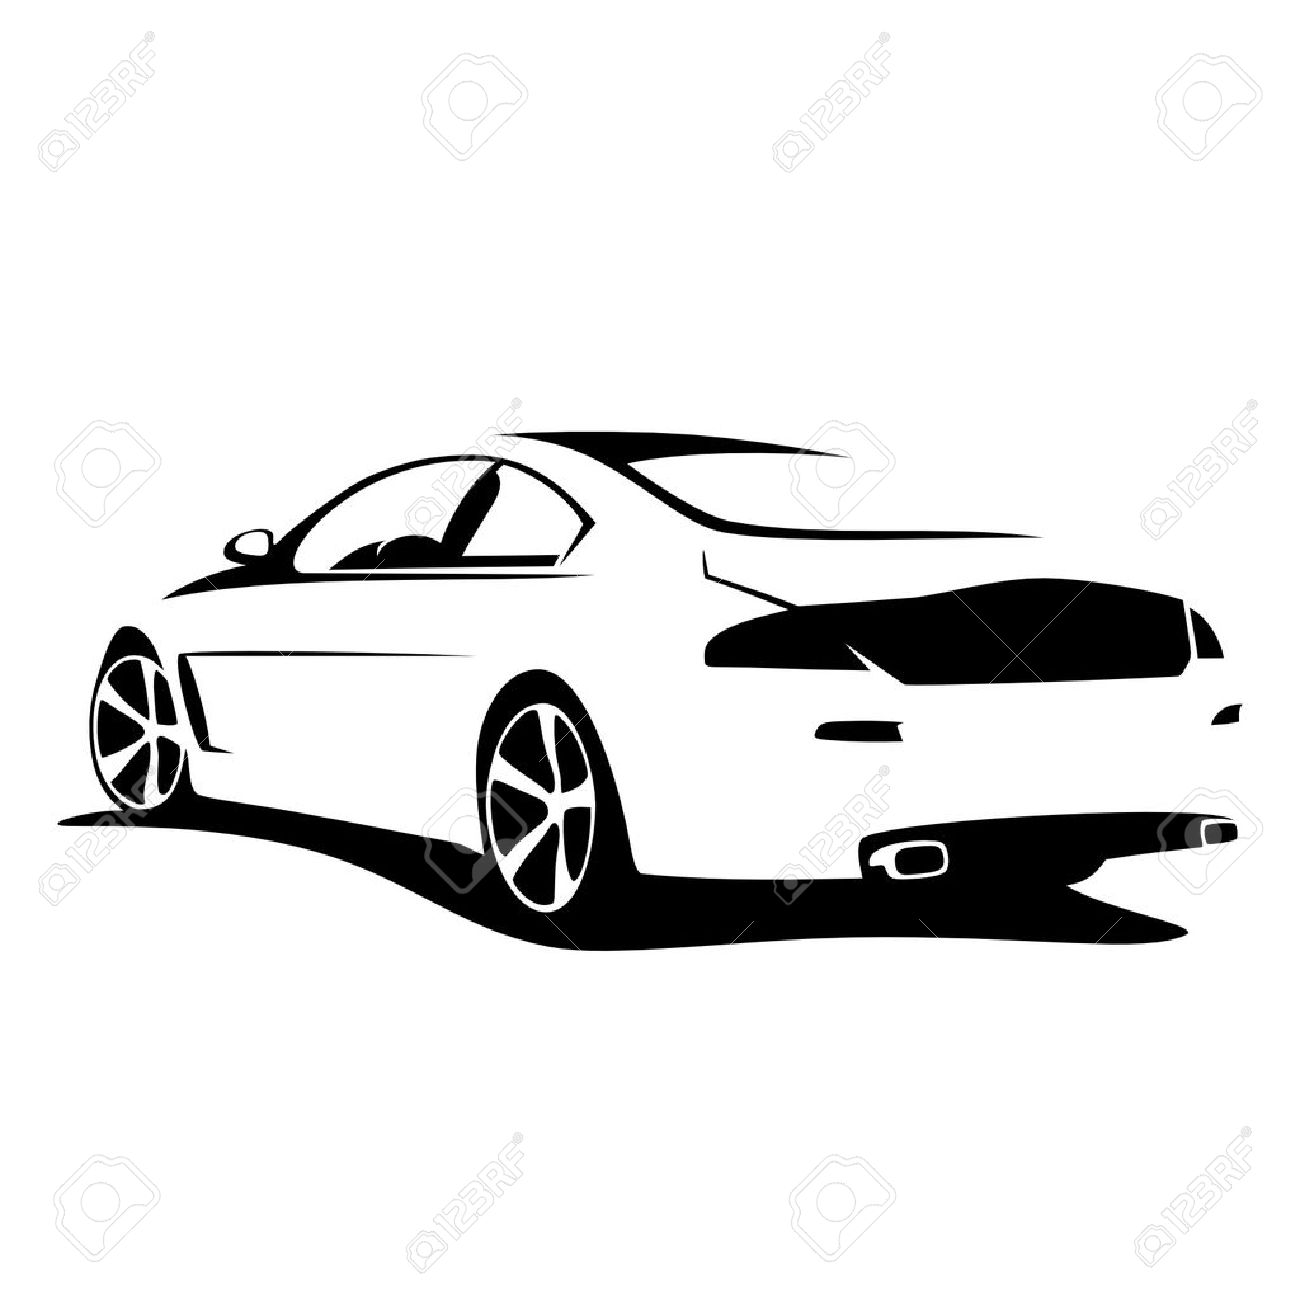 32 Tuning Car Clipart